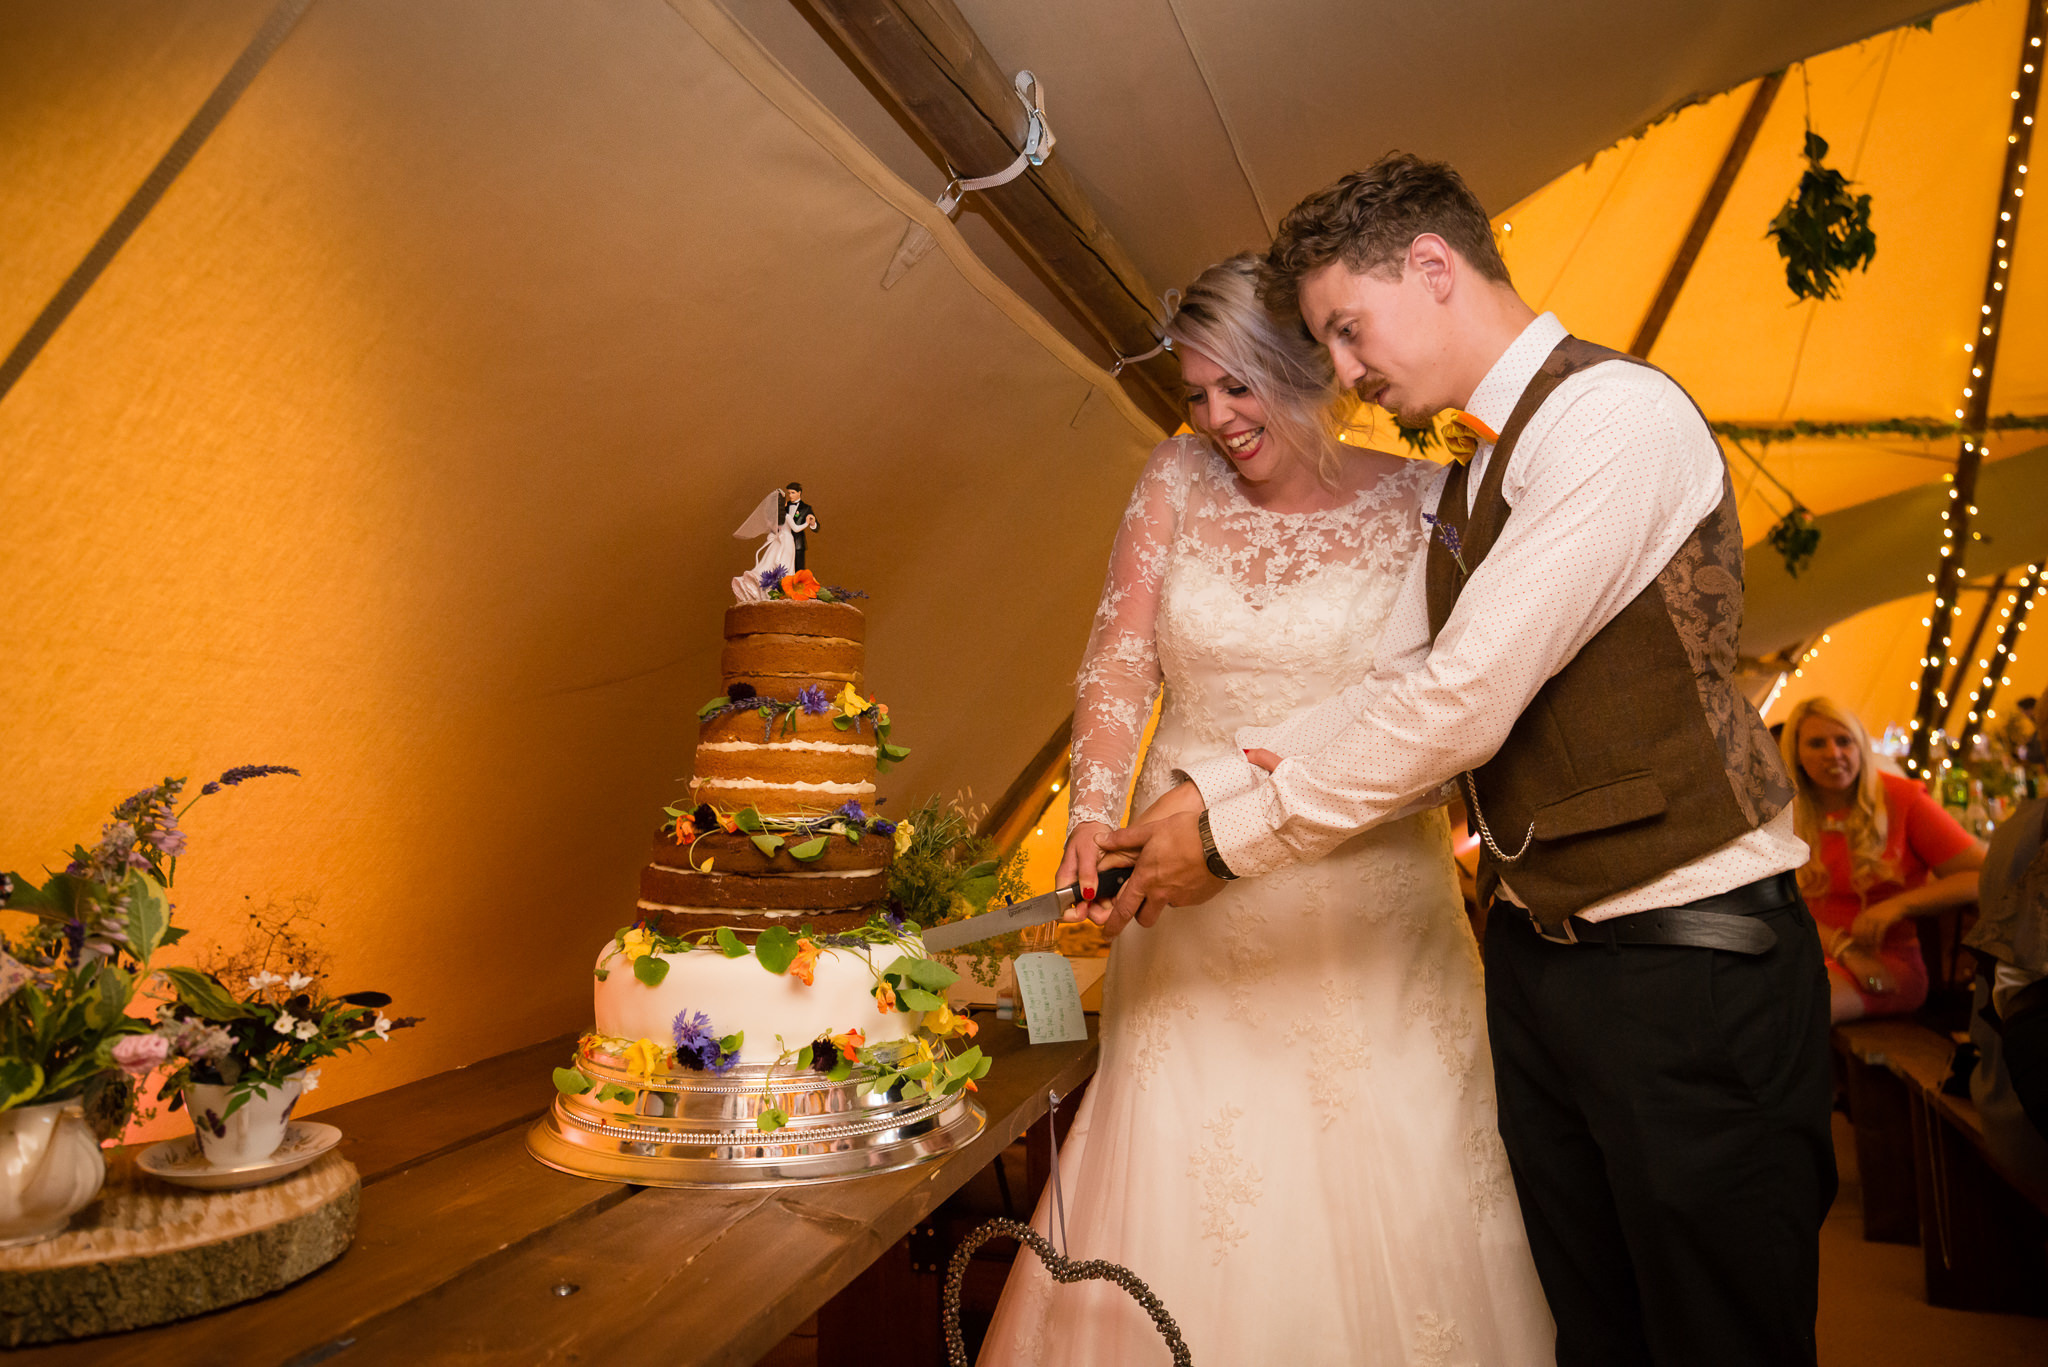 The bride and groom cut the wedding cake in the tipi